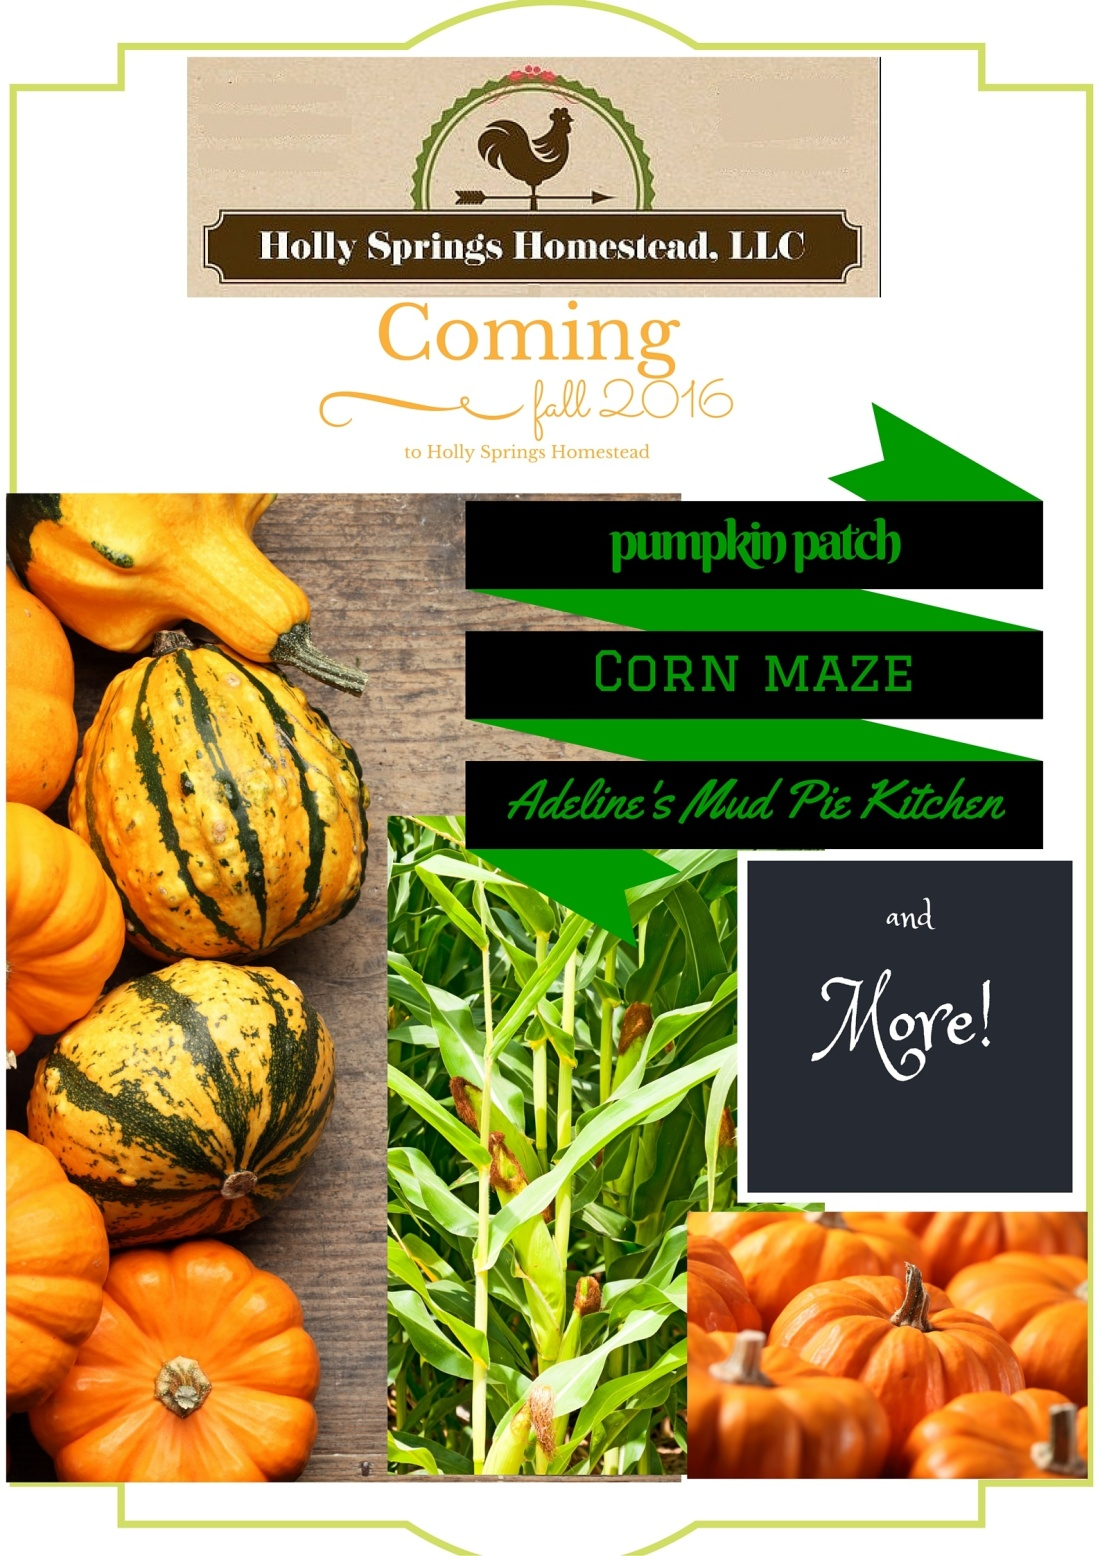 pumpkin patch, corn maze, mud pie kitchen2